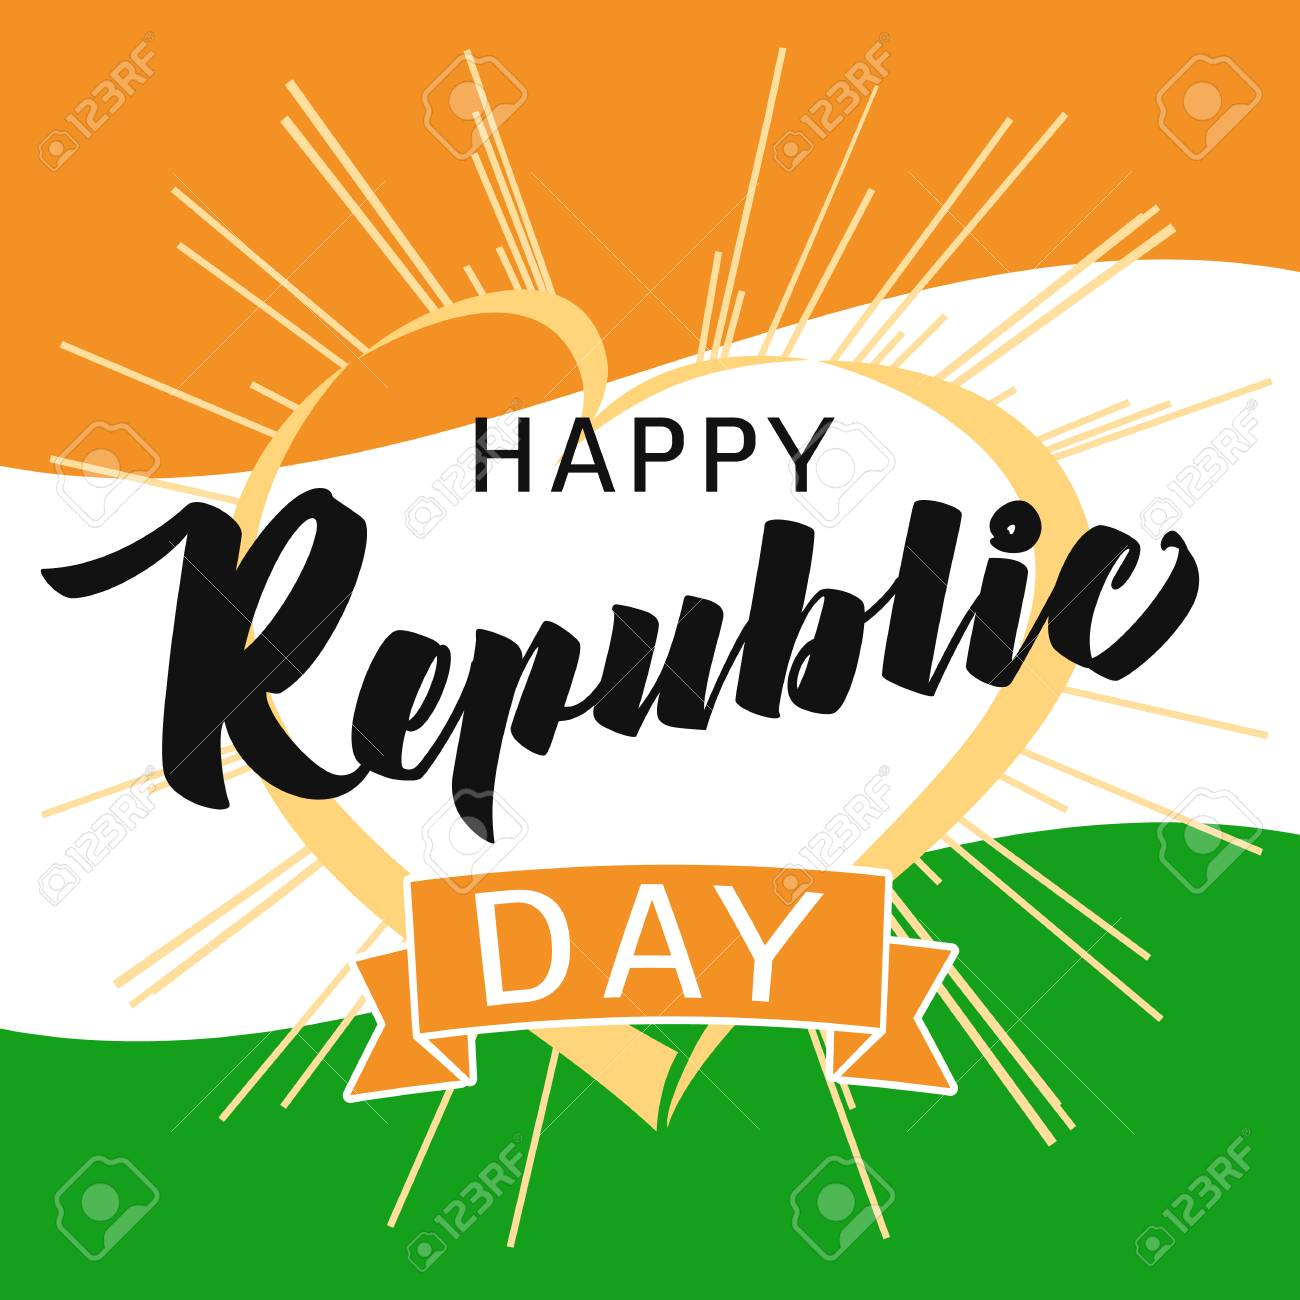 Happy republic day idia heart and beams greeting card in national happy republic day idia heart and beams greeting card in national flag colors vector poster m4hsunfo